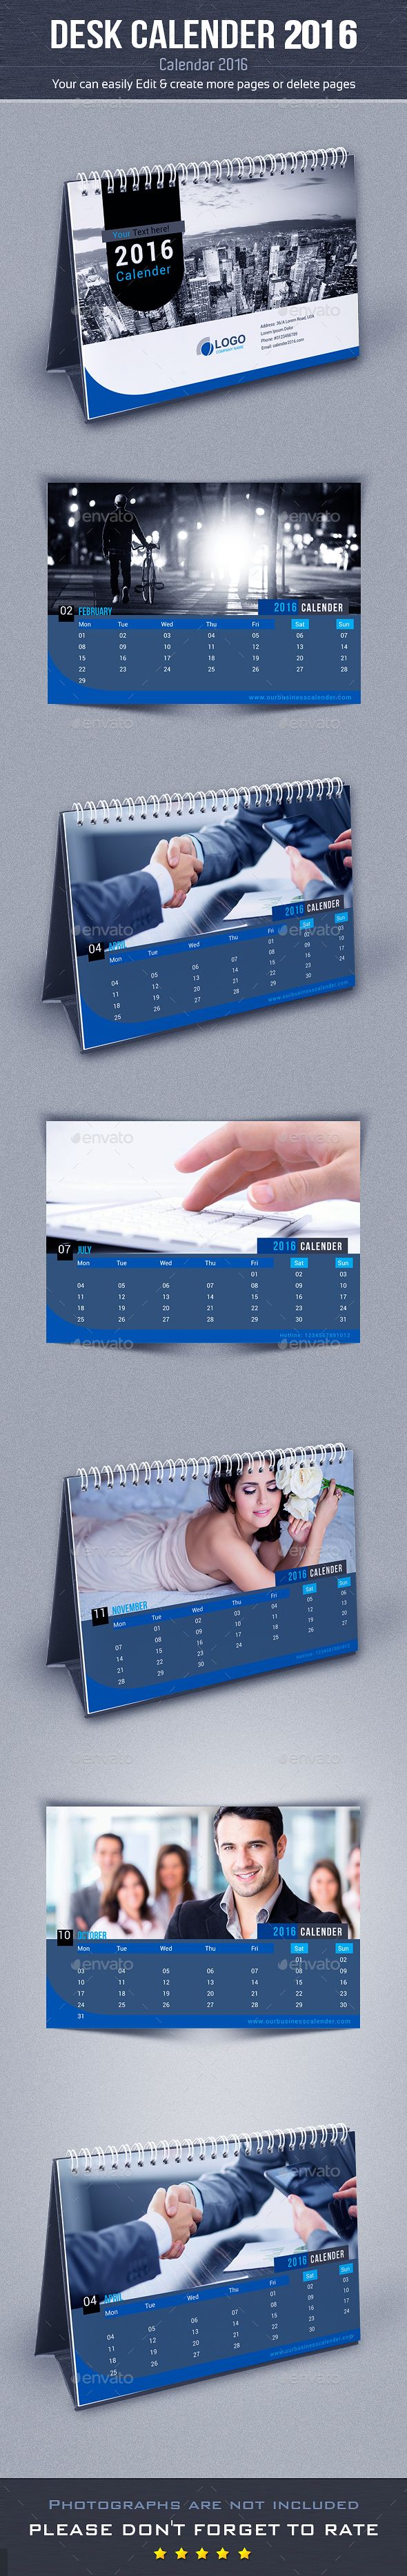 Desk Calendar 2016 Template InDesign INDD #design Download: http://graphicriver.net/item/desk-calendar-2016-/13433821?ref=ksioks